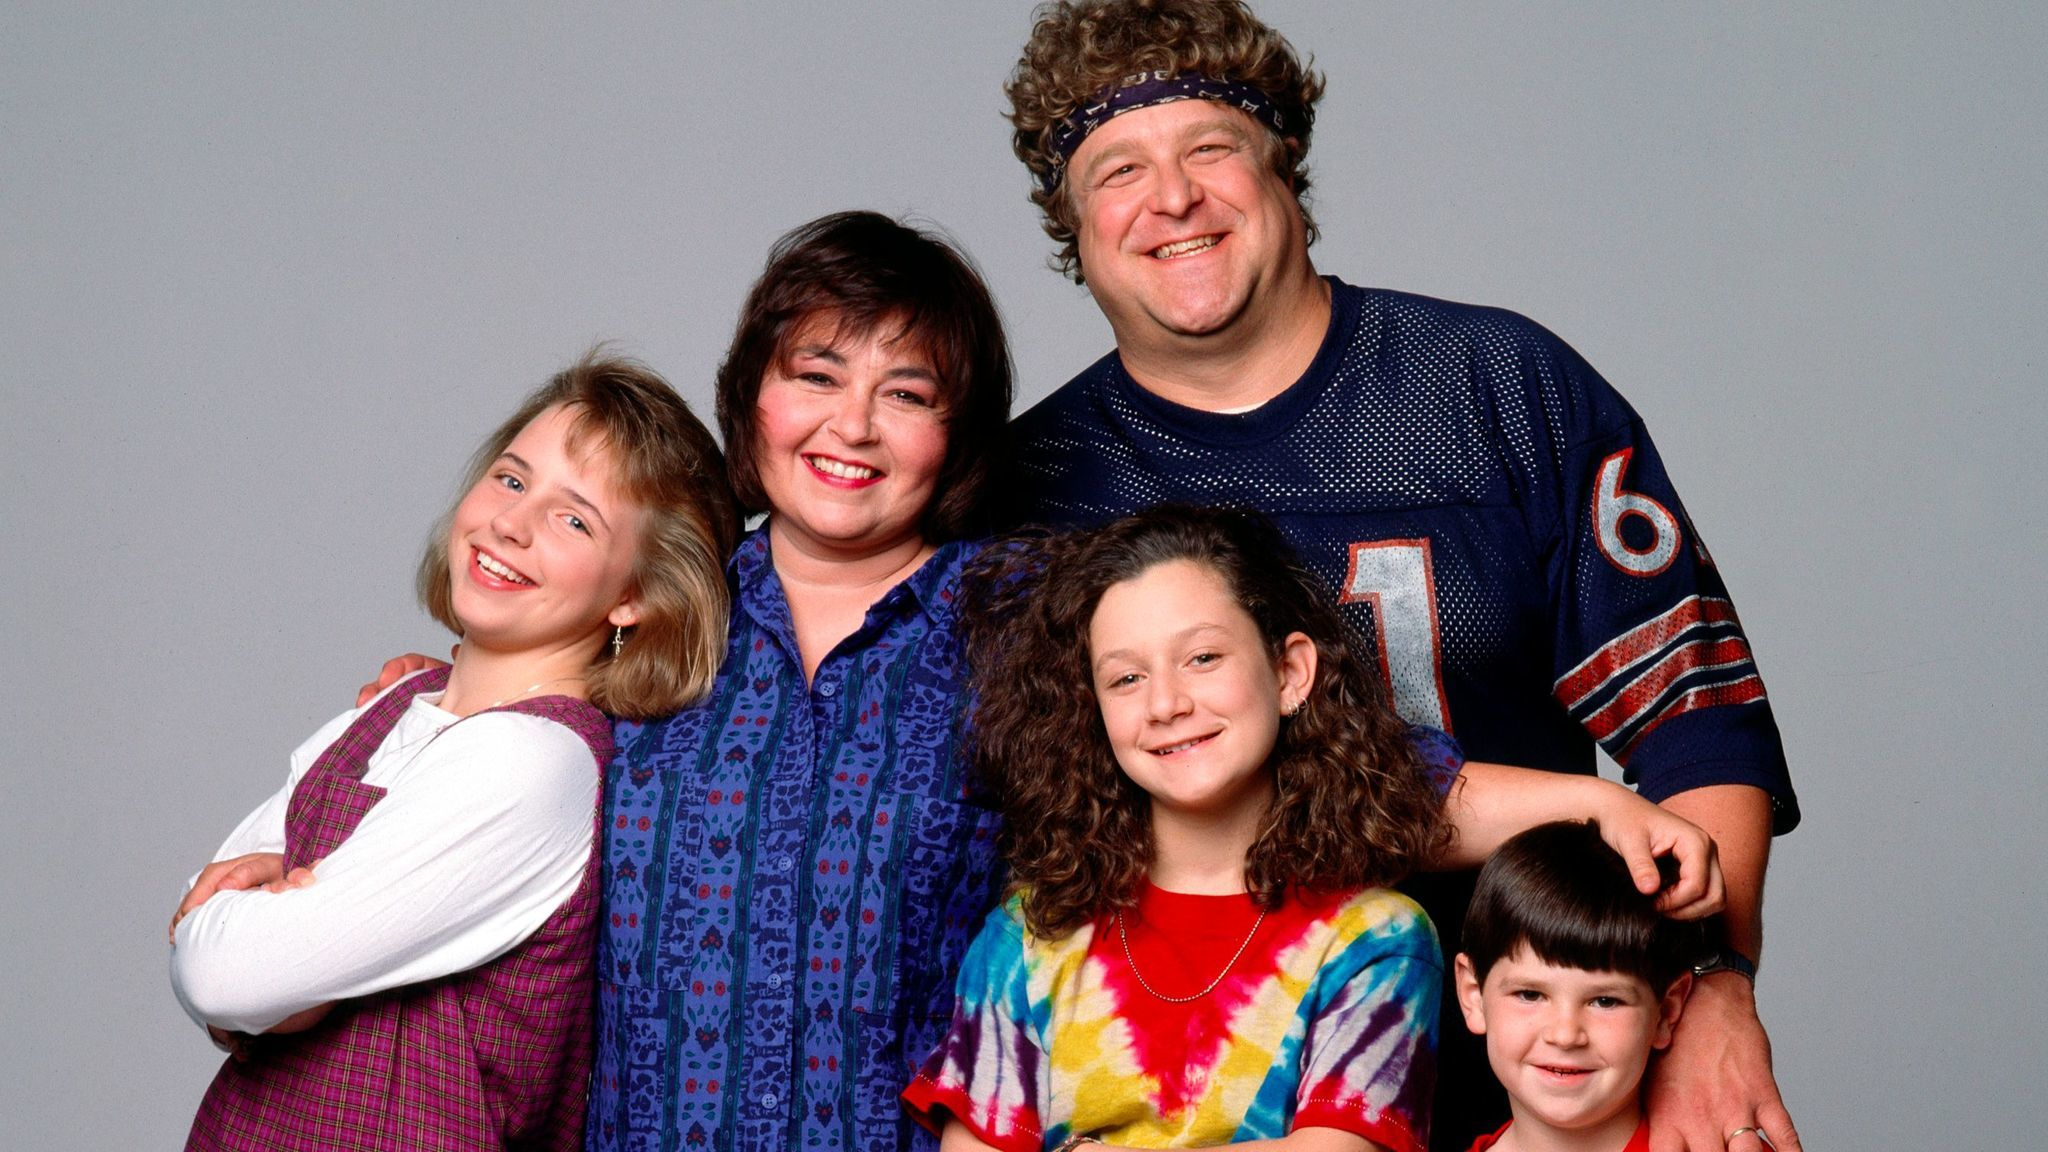 Roseanne is coming back to ABC in March